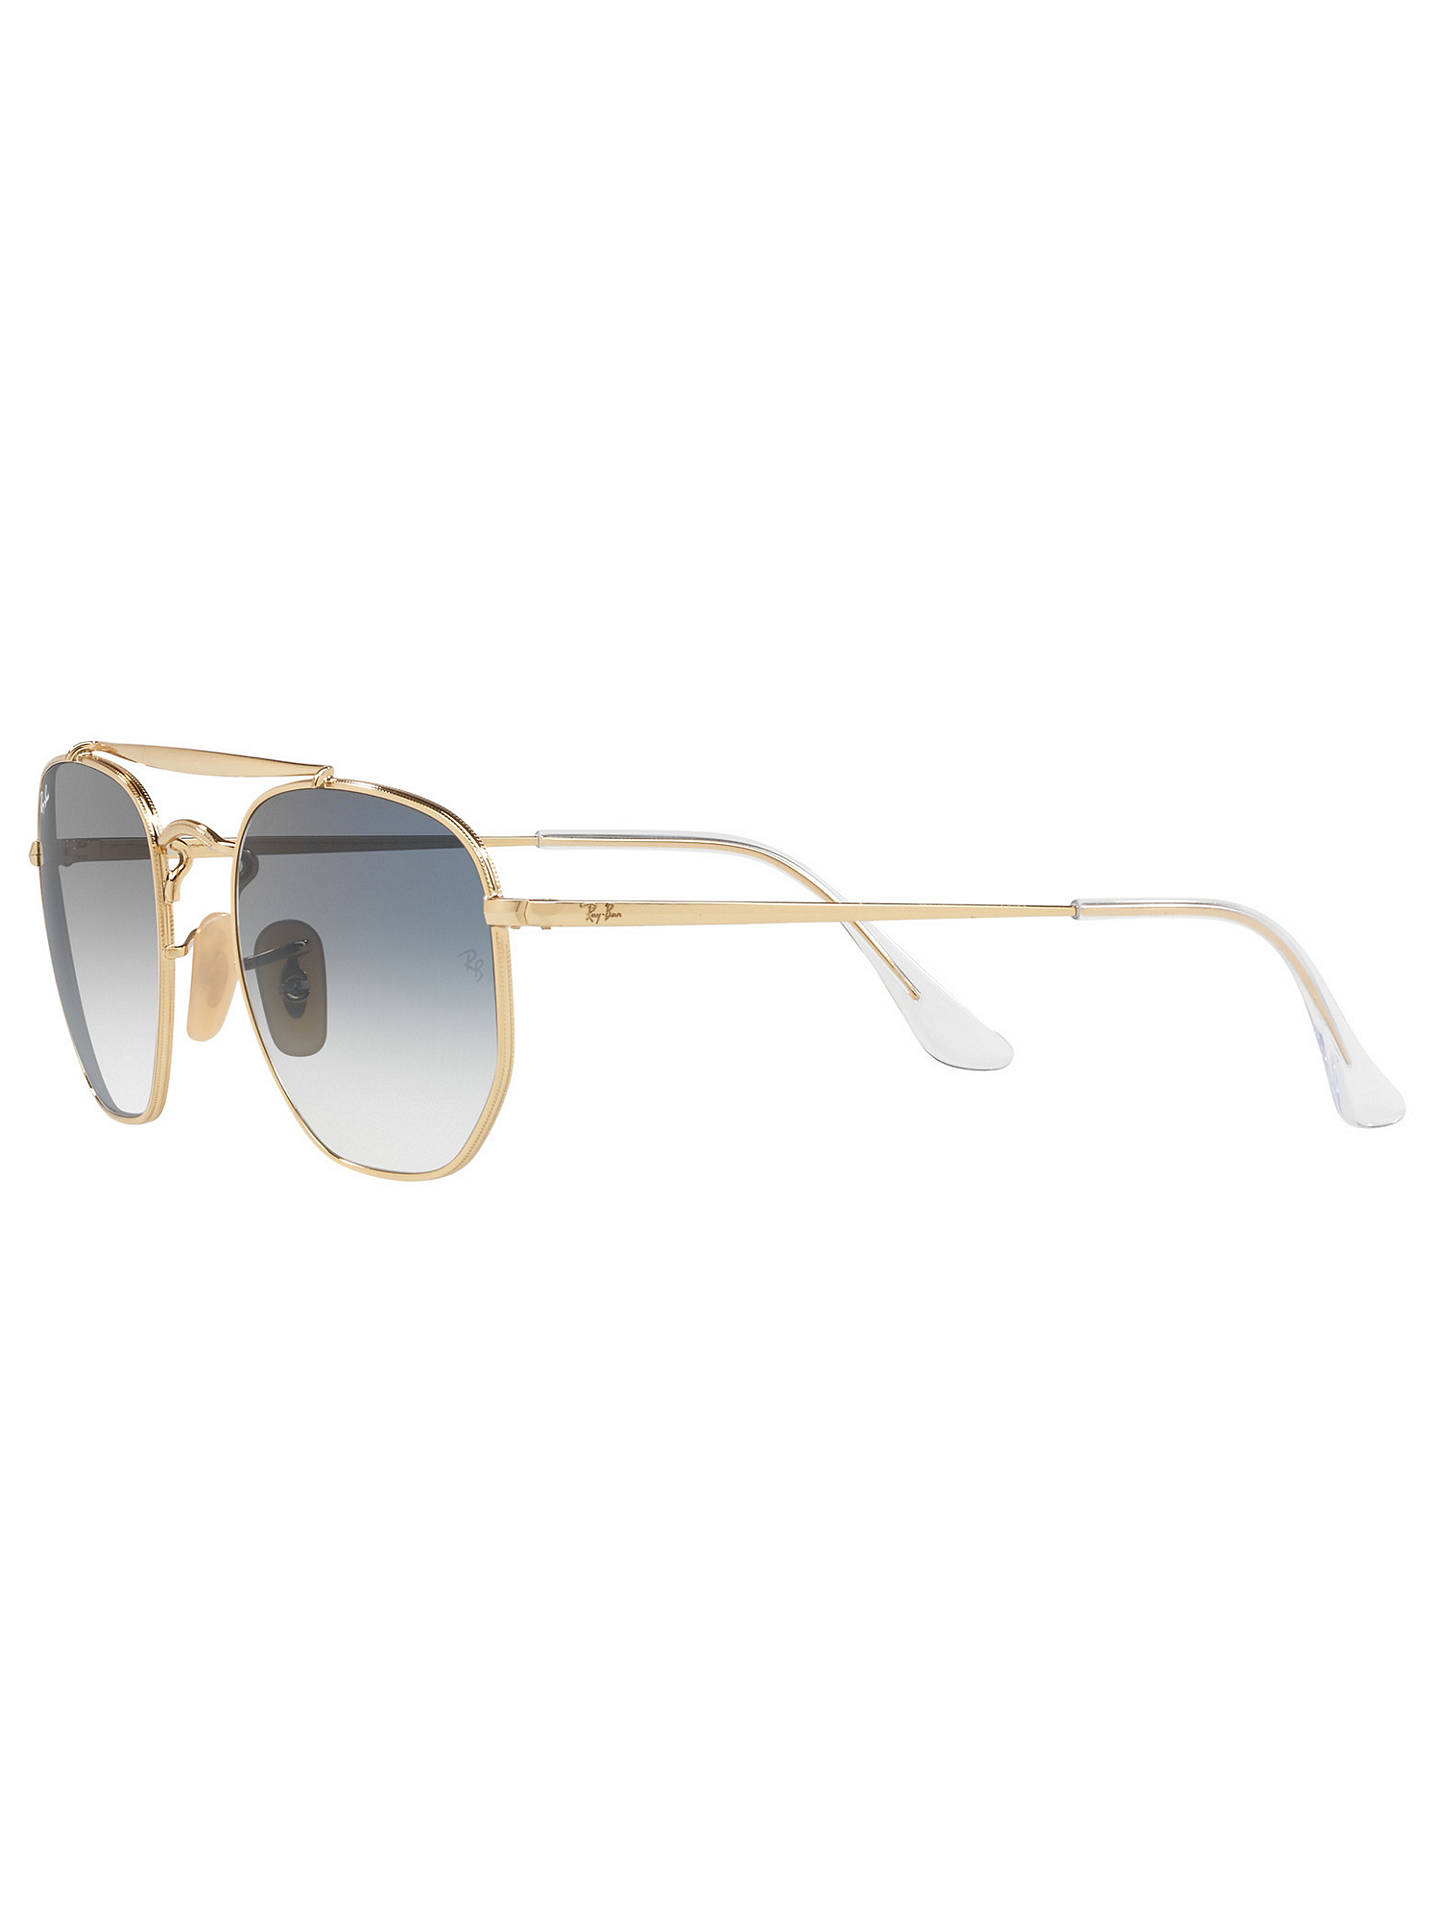 BuyRay-Ban RB3648 Square Marshal Sunglasses, Gold/Blue Online at johnlewis.com